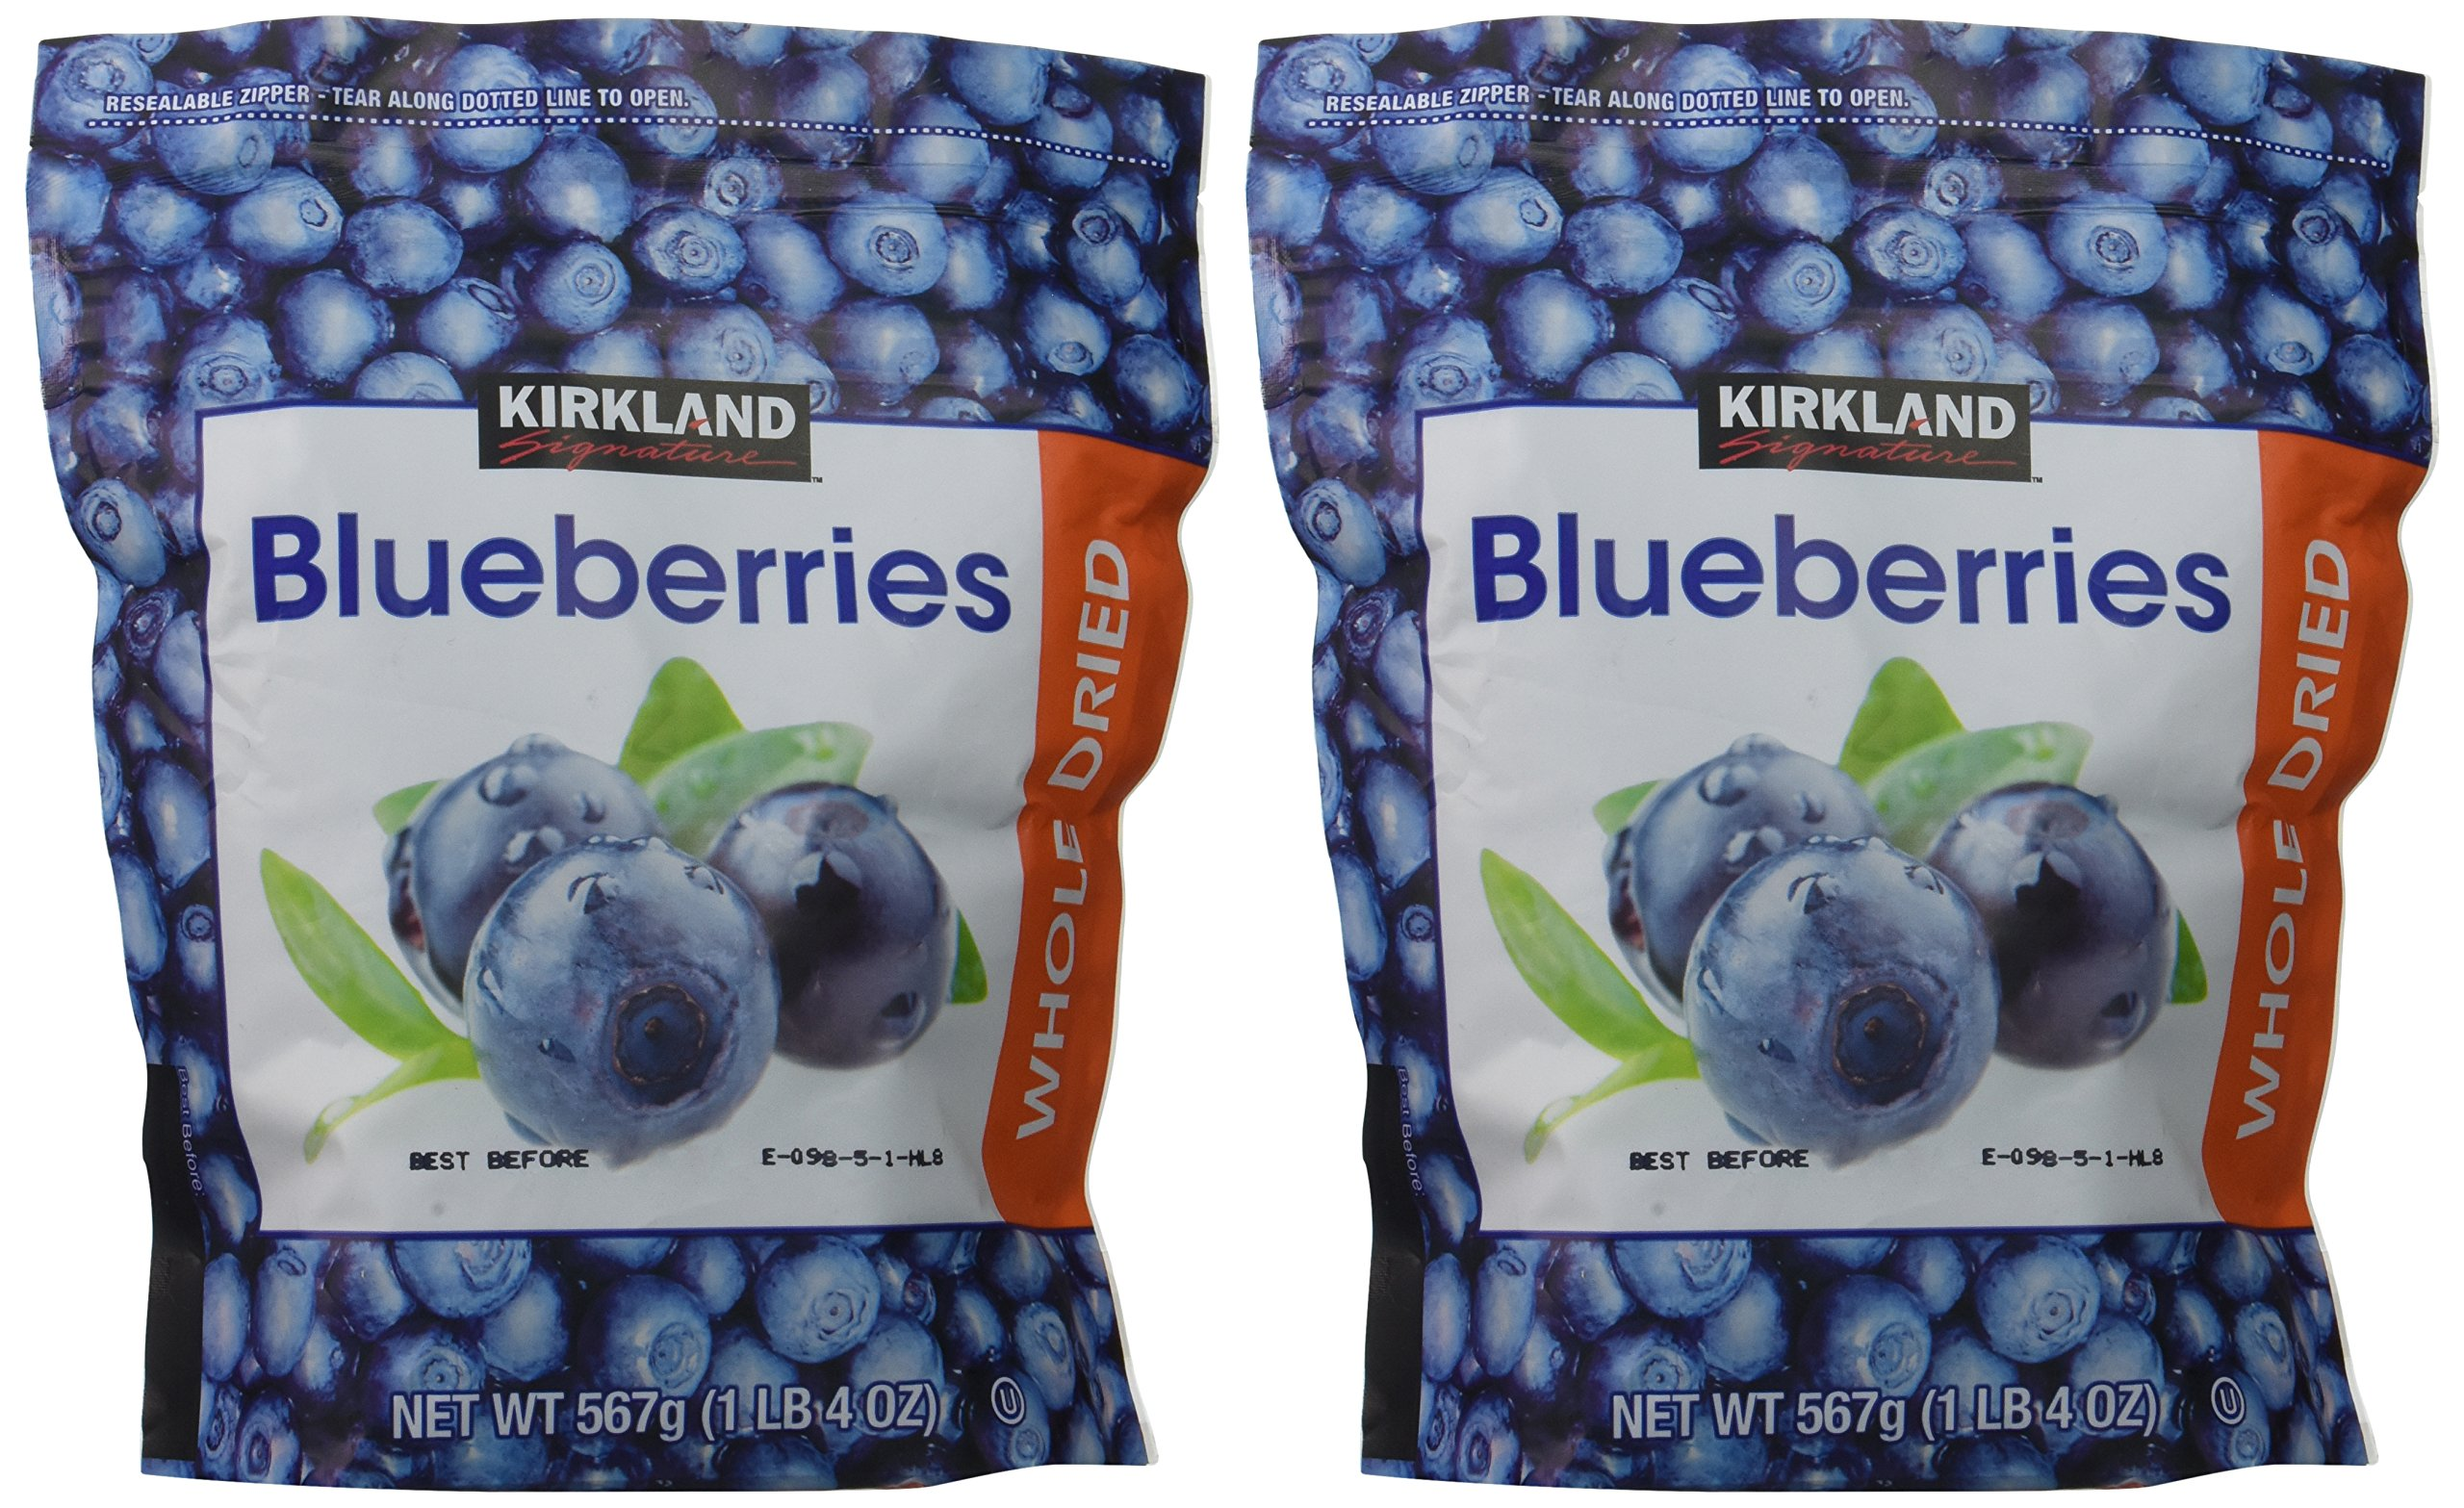 Kirkland Signature Whole Dried Blueberries: 2 Bags of 20 Oz (1 Bag is 1LB 4 OZ which is 20 Ounces) by Kirkland Signature